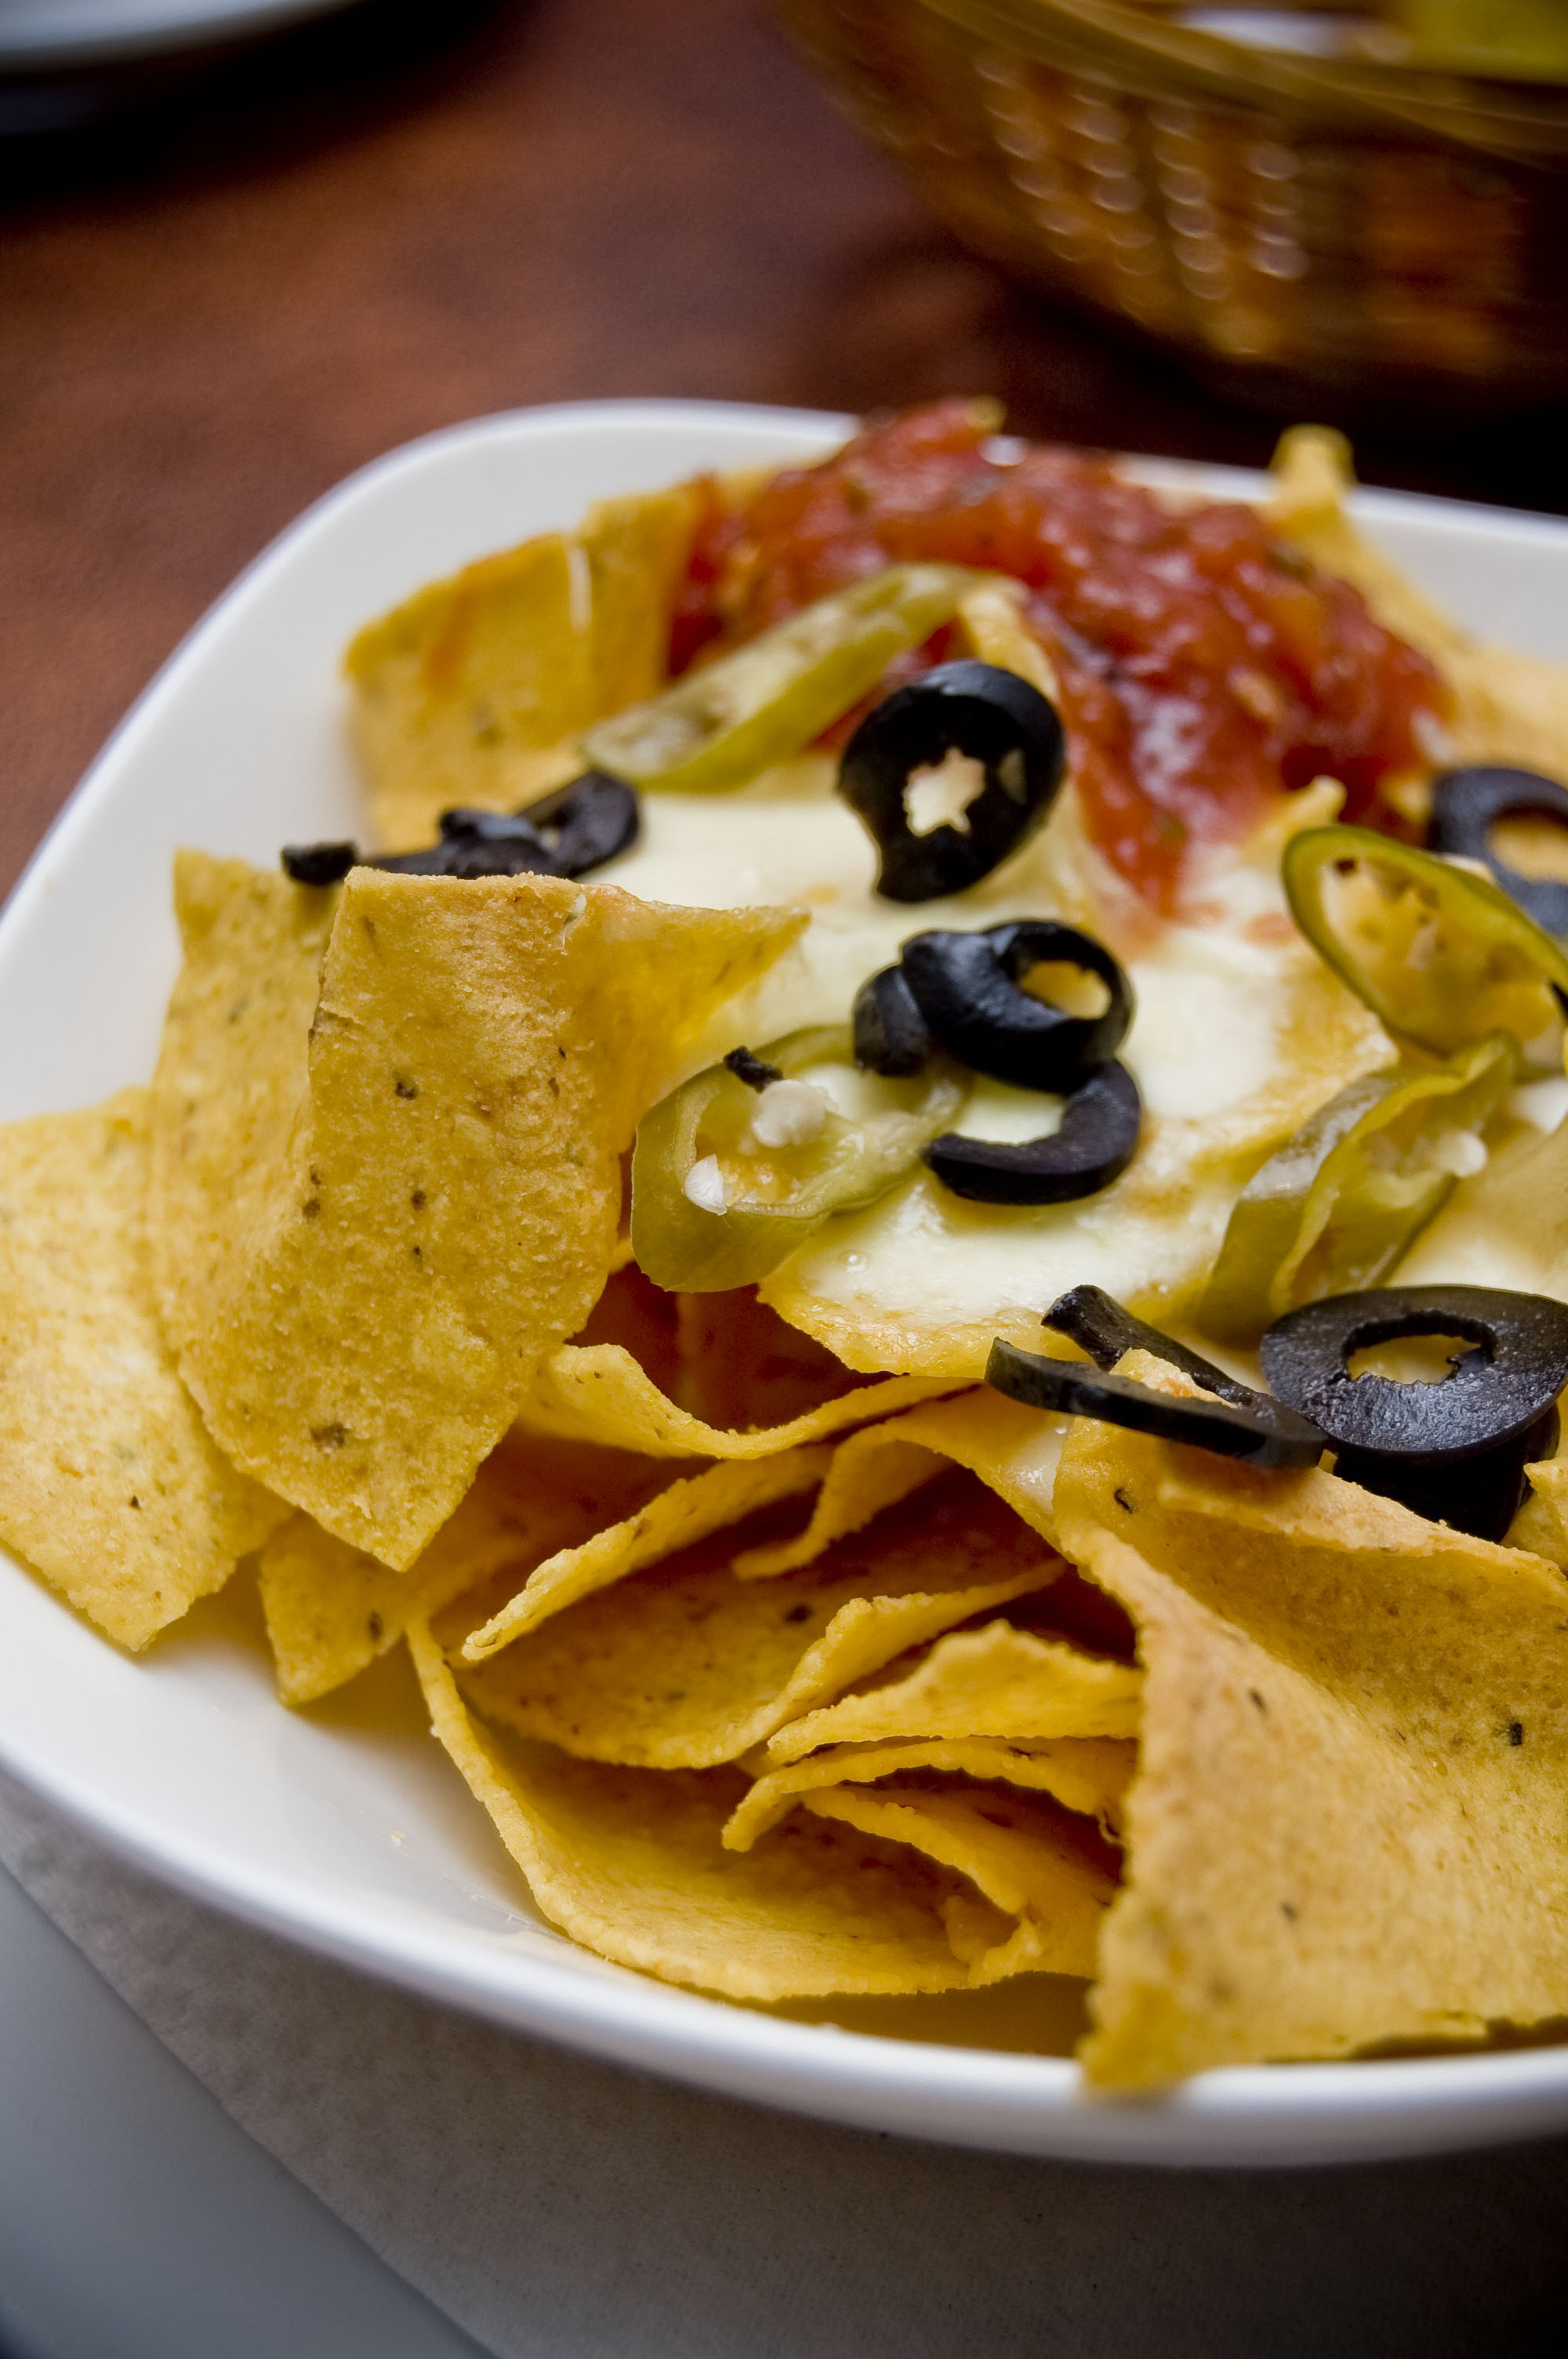 File:Nachos-cheese.jpg - Wikimedia Commons